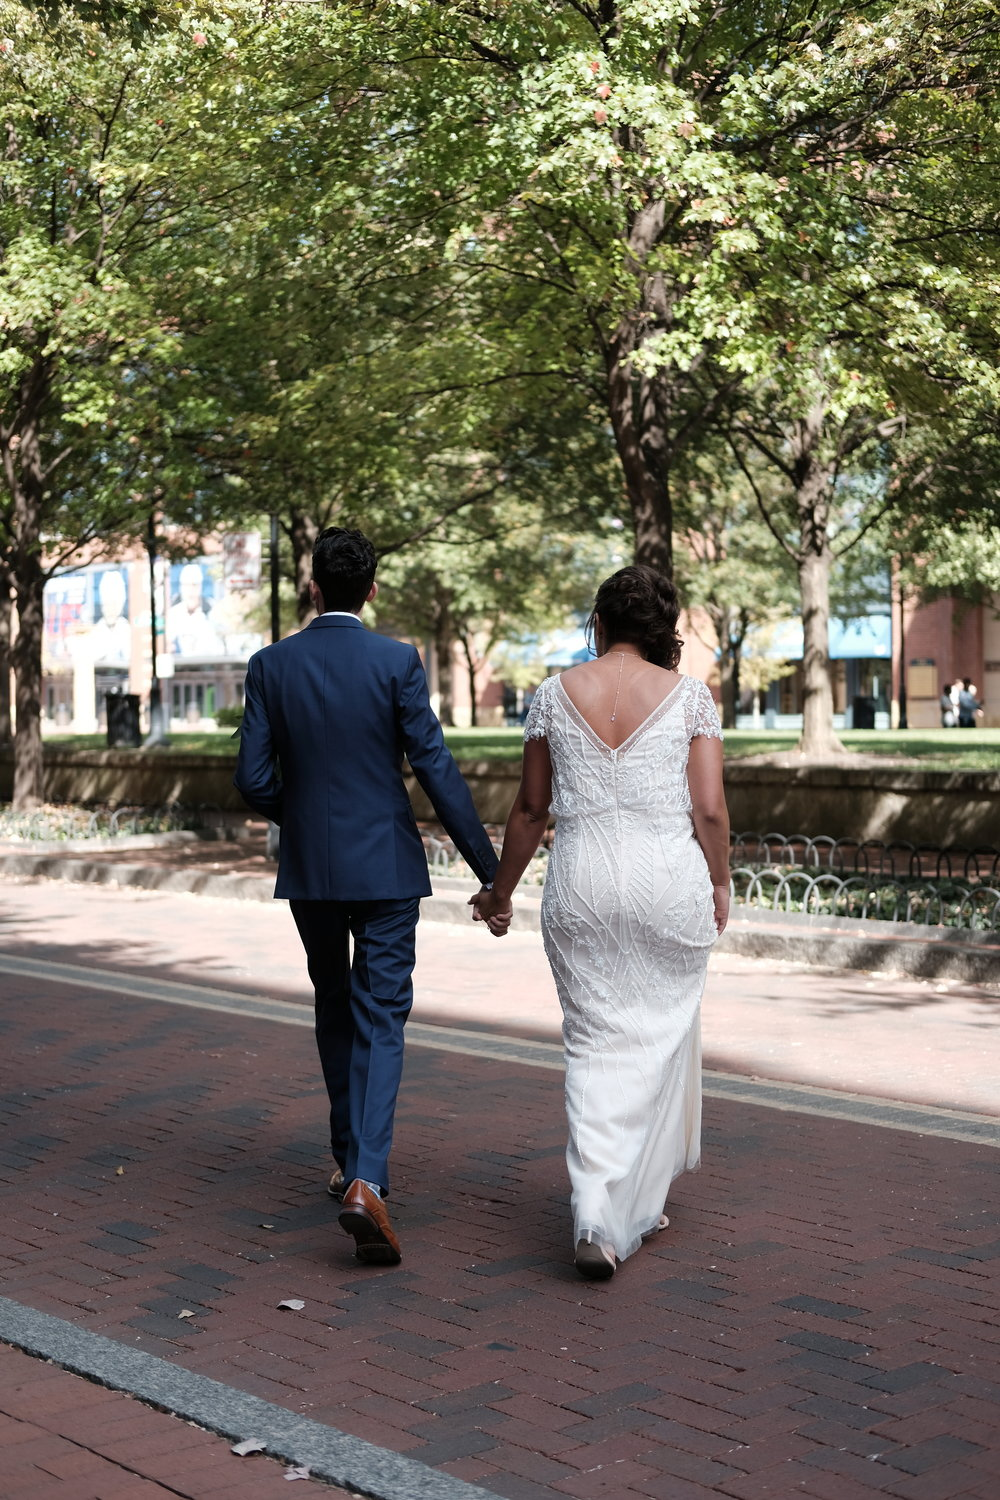 North Bank Pavilion Park Wedding - Downtown Columbus, OH - Jessica + Dean132.JPG